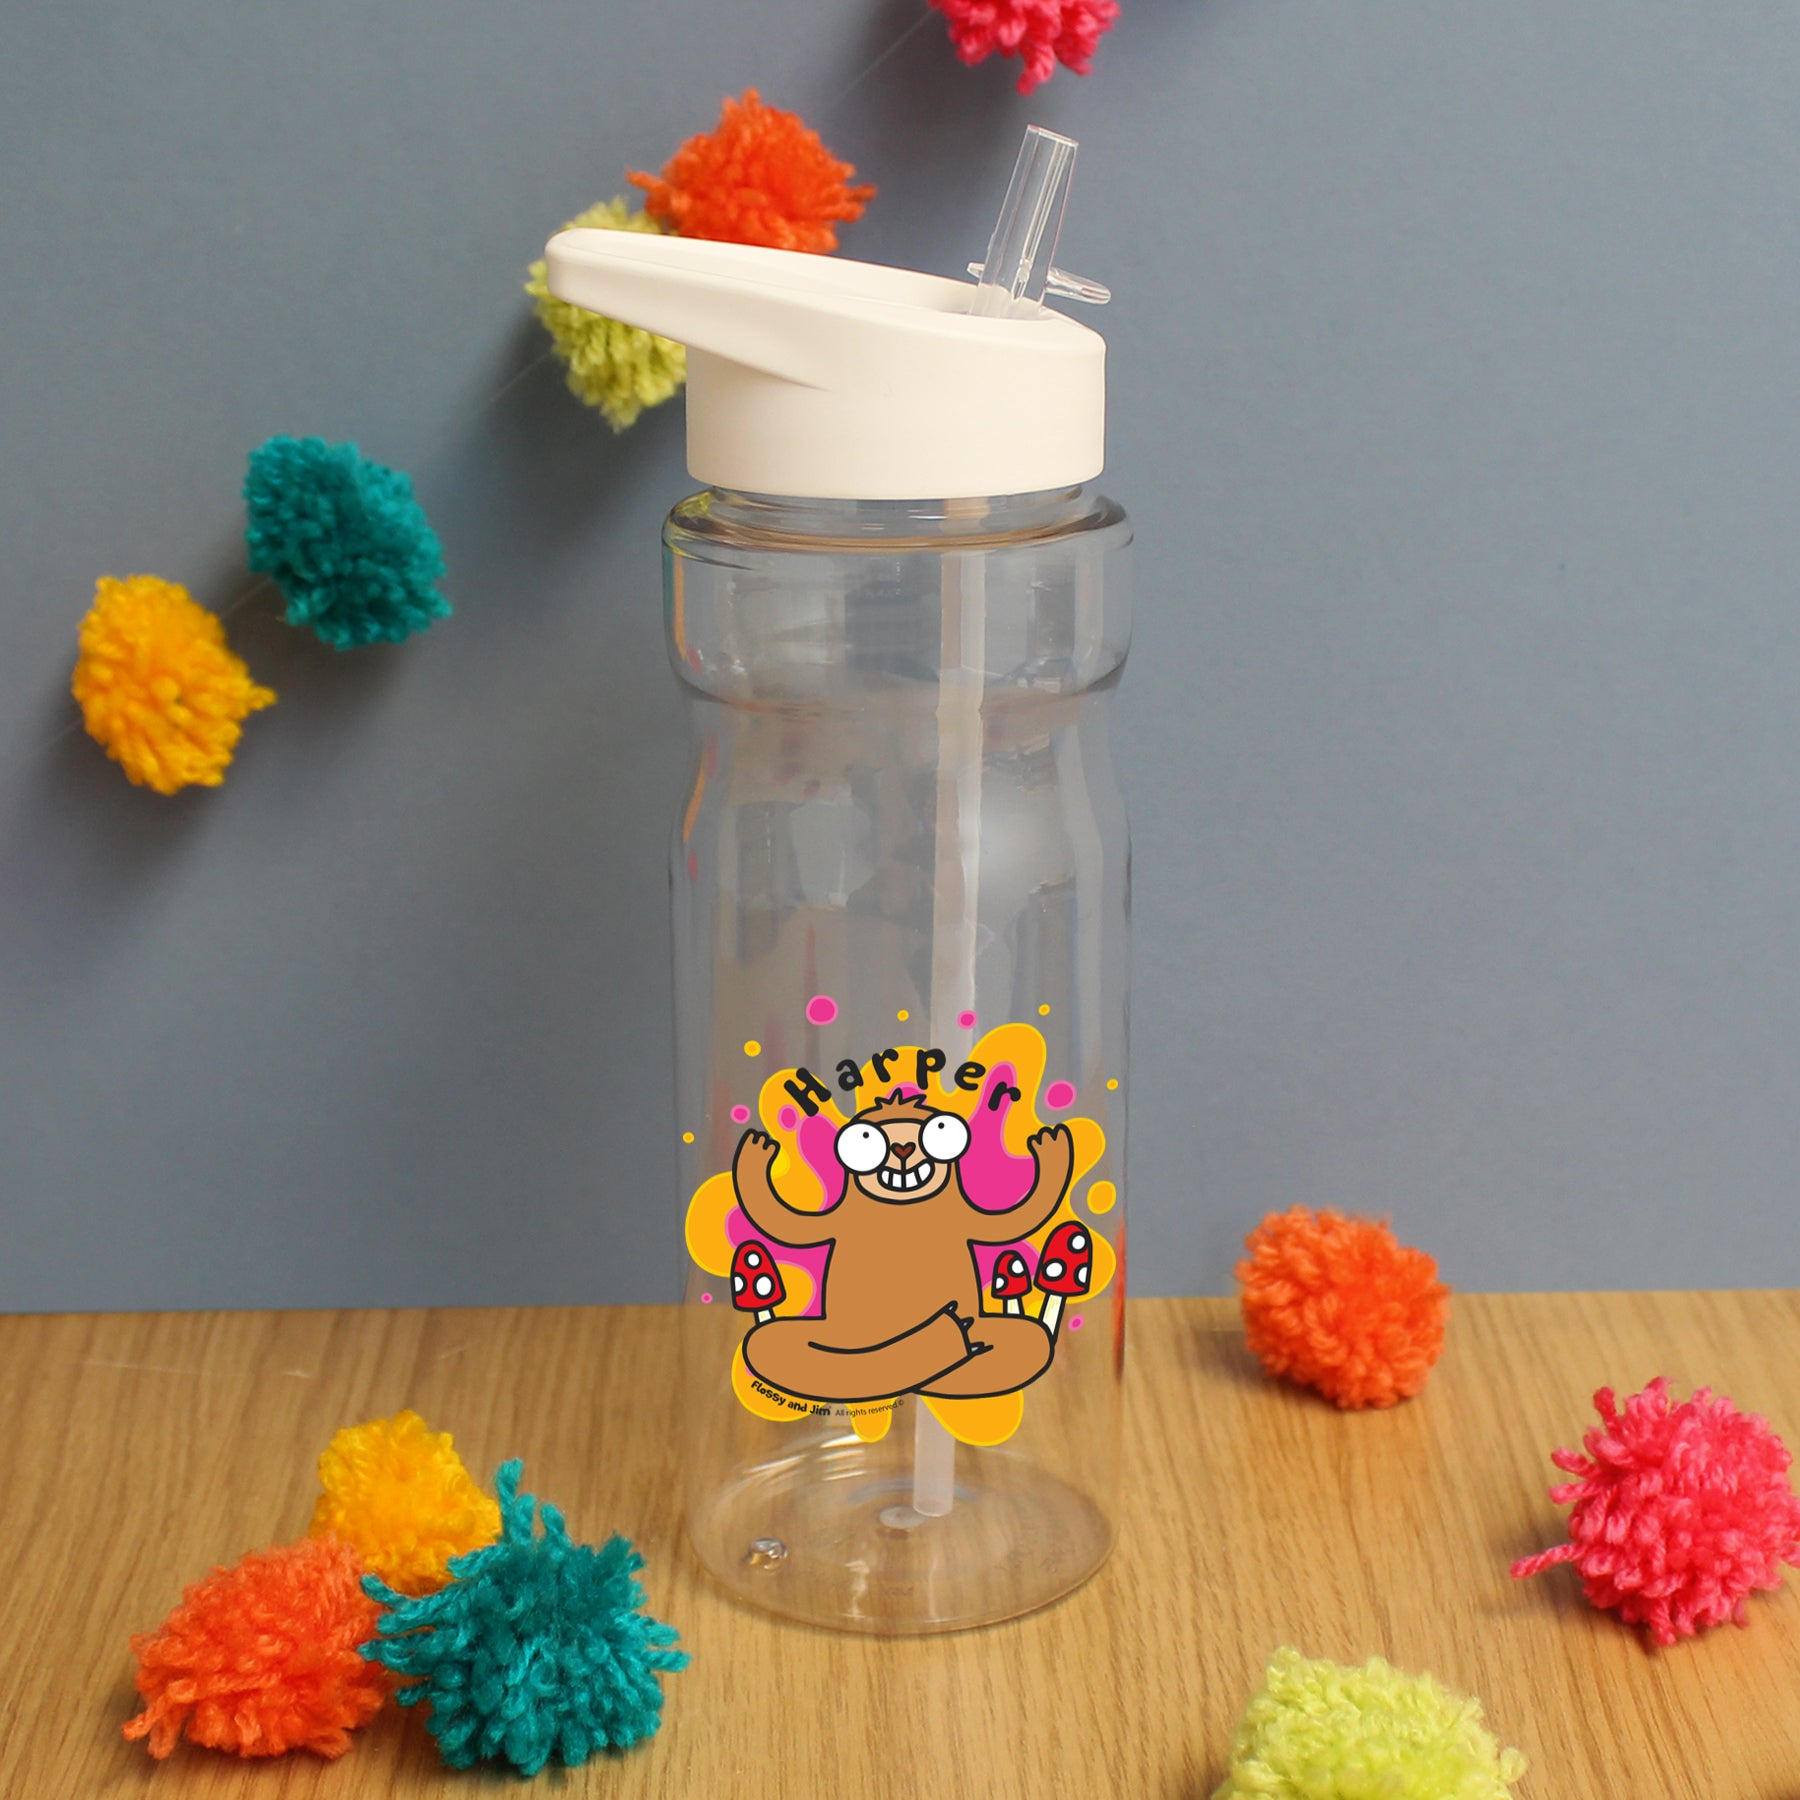 Groovy Sloth Waisted Water Bottle, Home & Garden by Low Cost Gifts